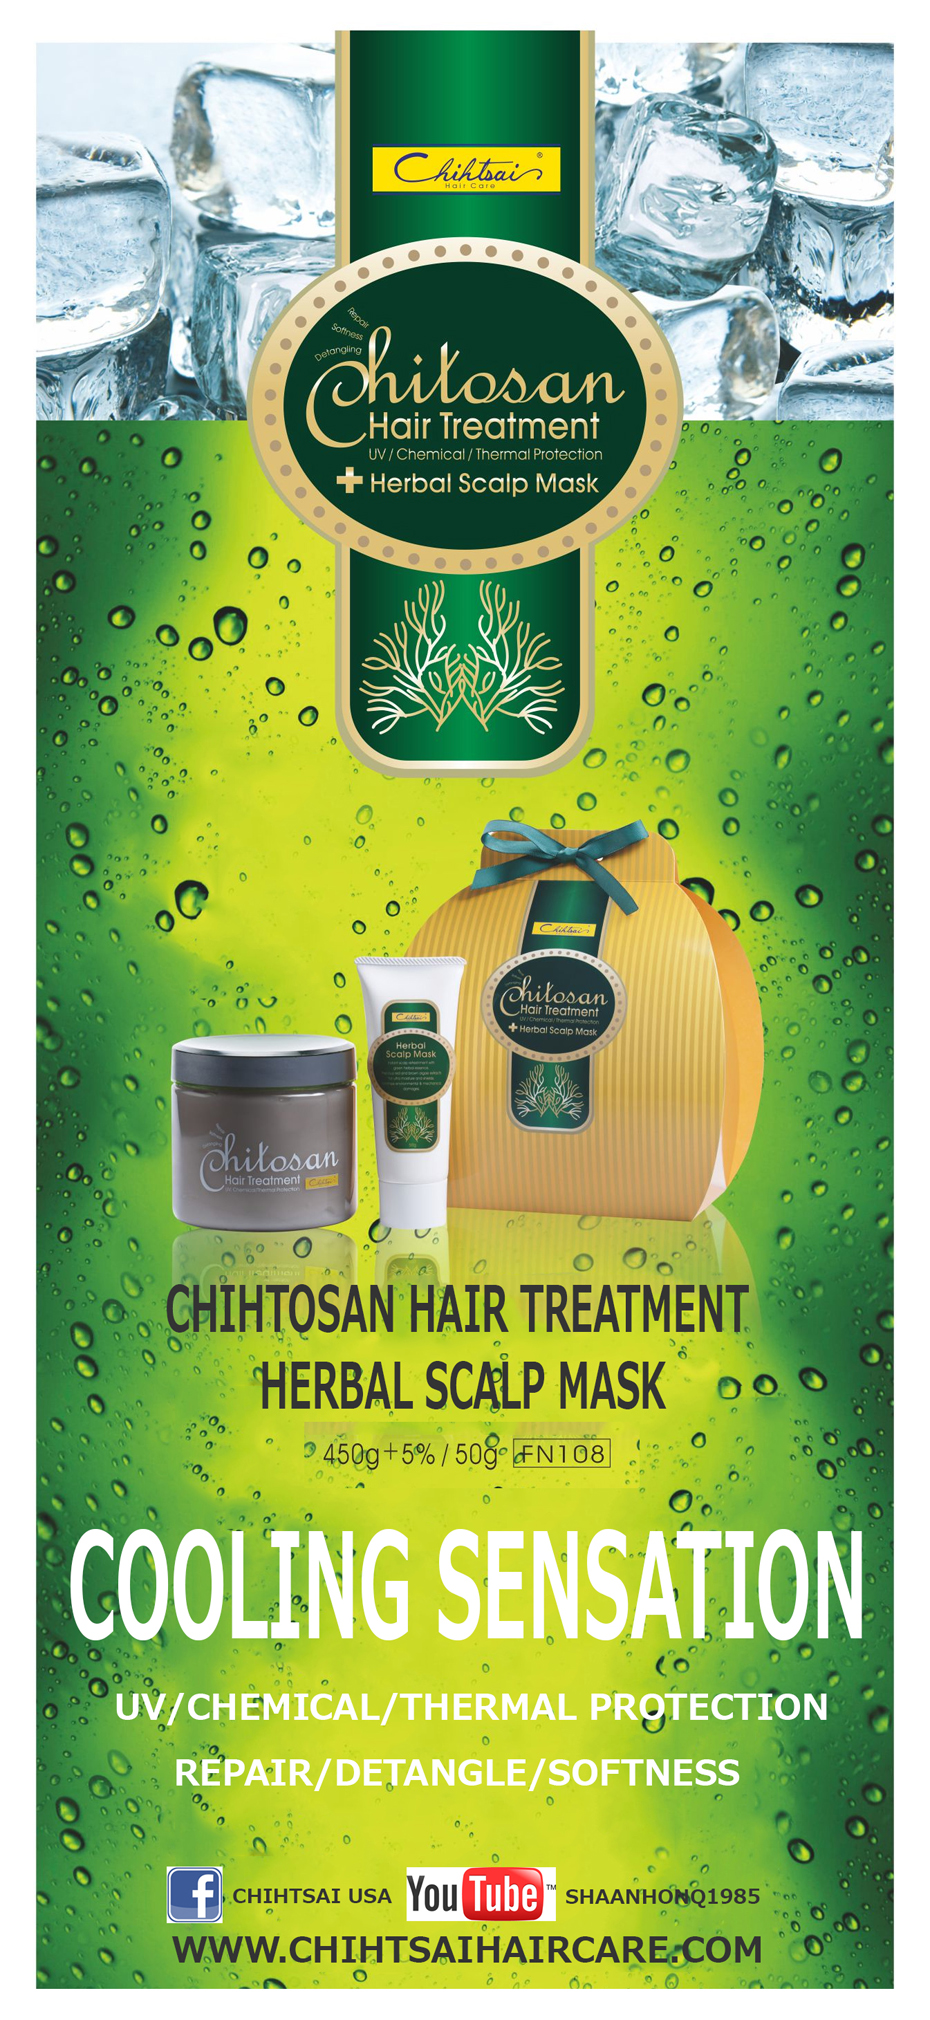 Product Launch: Chihtsai Chitosan Hair Treatment with Herbal Scalp Mask Set